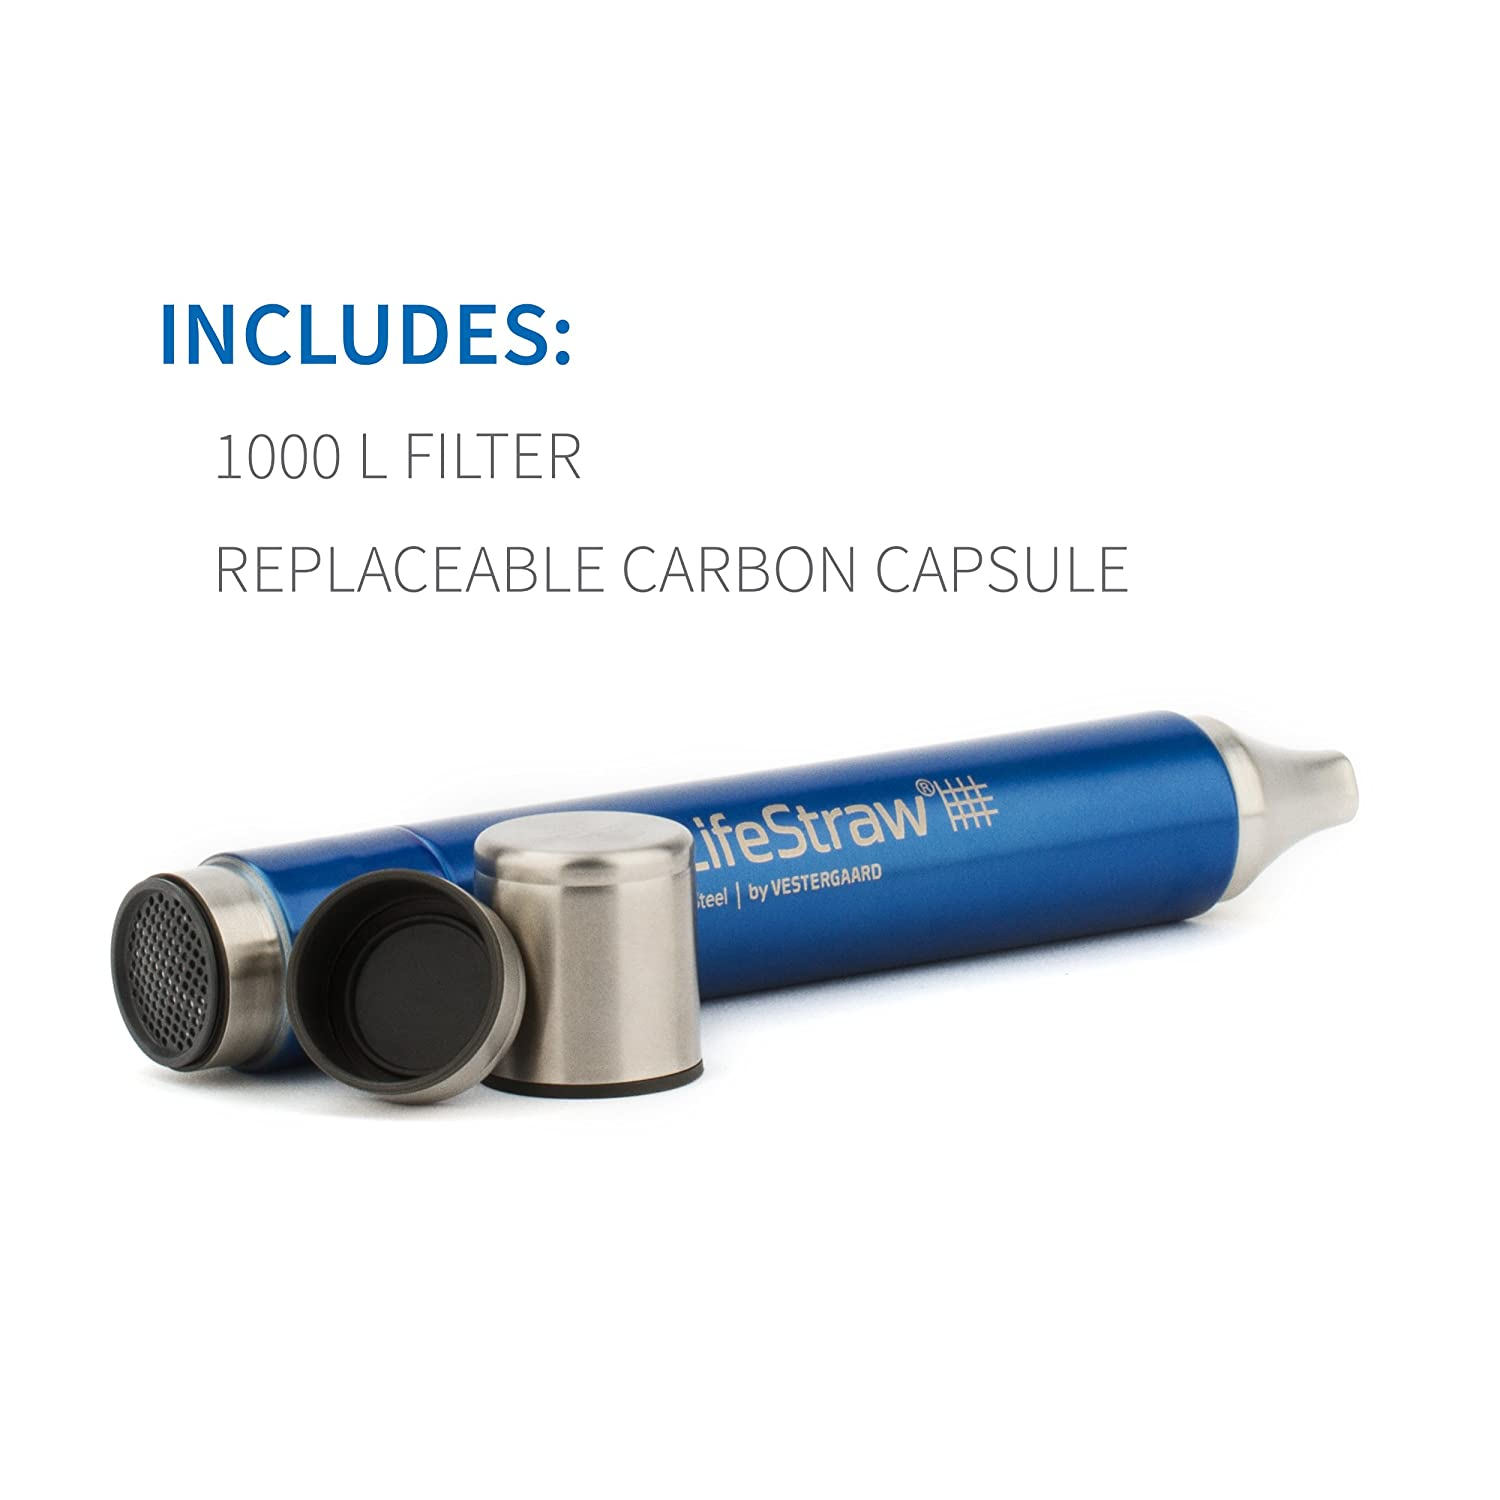 LifeStraw Steel Personal Water Filter with 2 Stage Carbon Filtration for Hiking Camping Travel and Emergency Preparedness